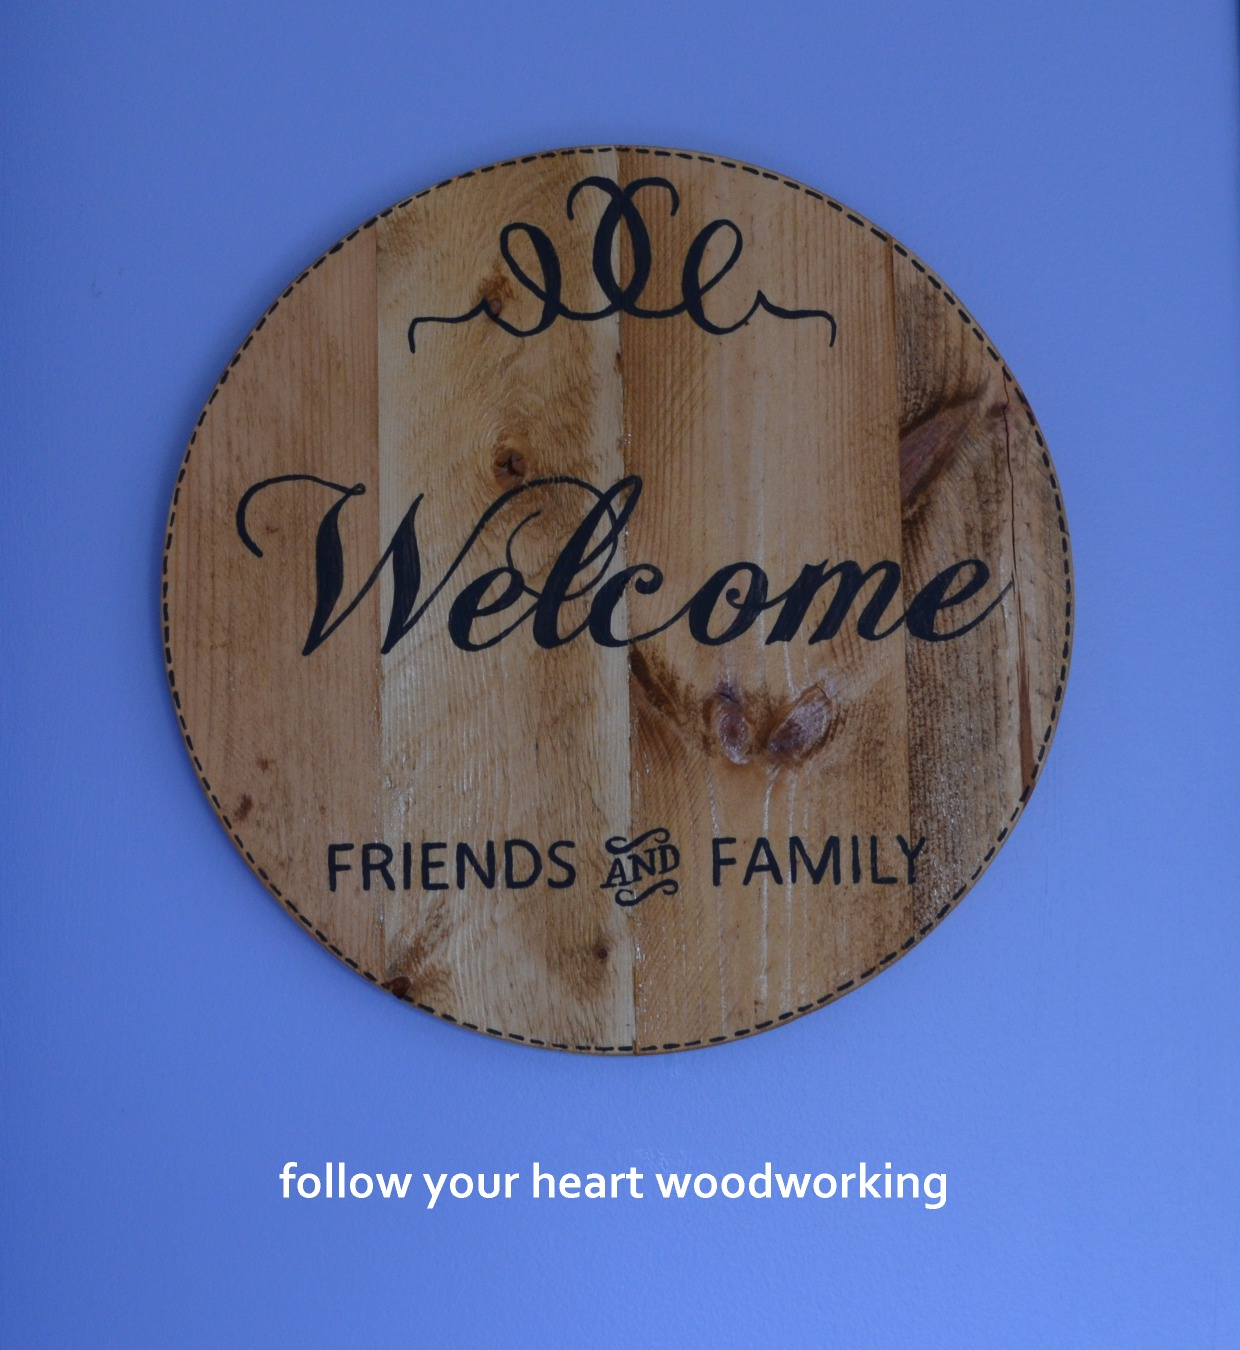 Welcome Friends & Family 0255 (2)